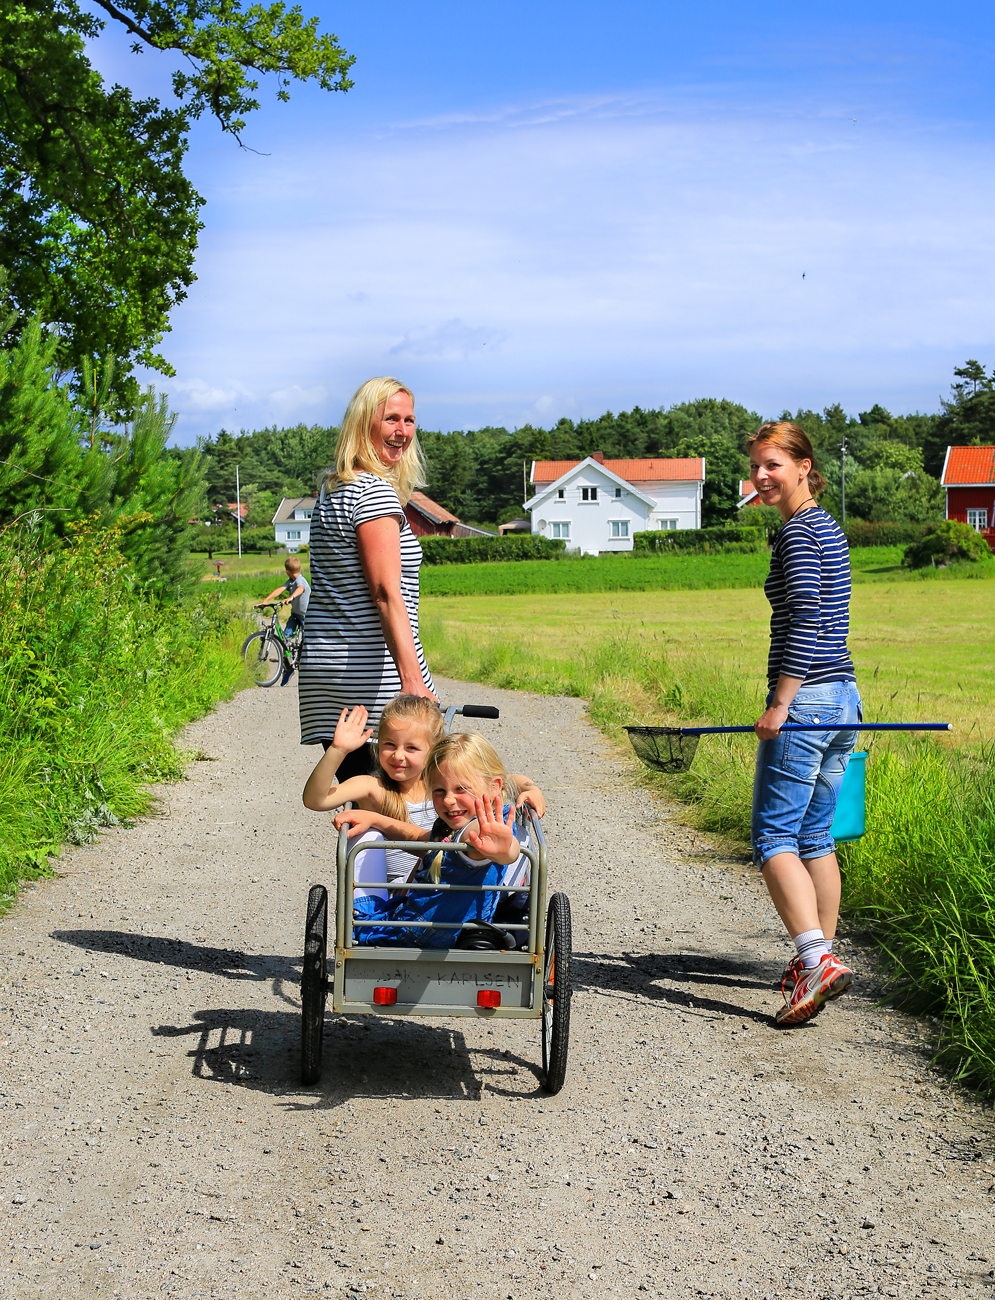 No cars are allowed in the southern part of the archipelago which makes this the perfect destination for long walks and bike rides.